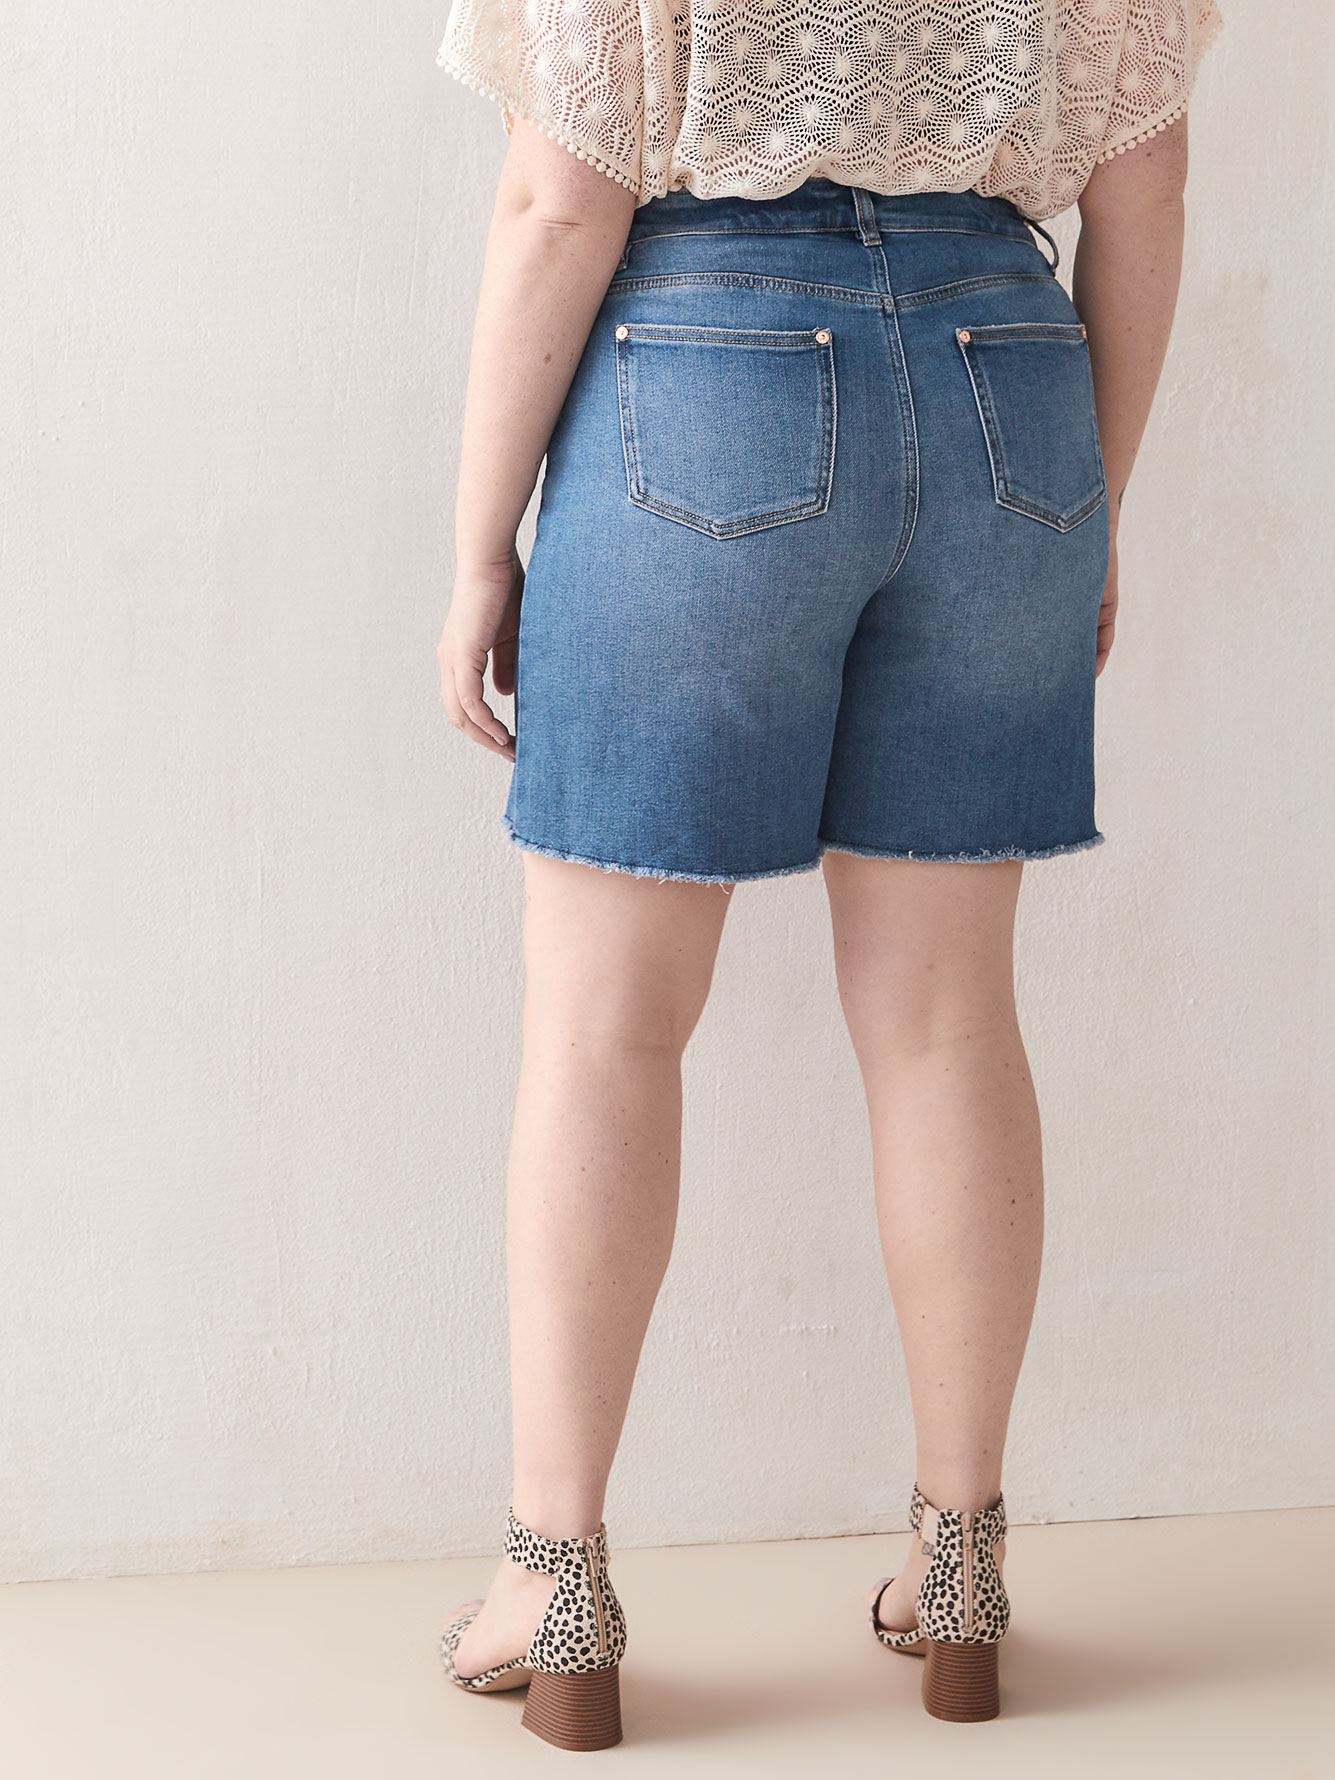 Vintage Cutoff Denim Short - Addition Elle